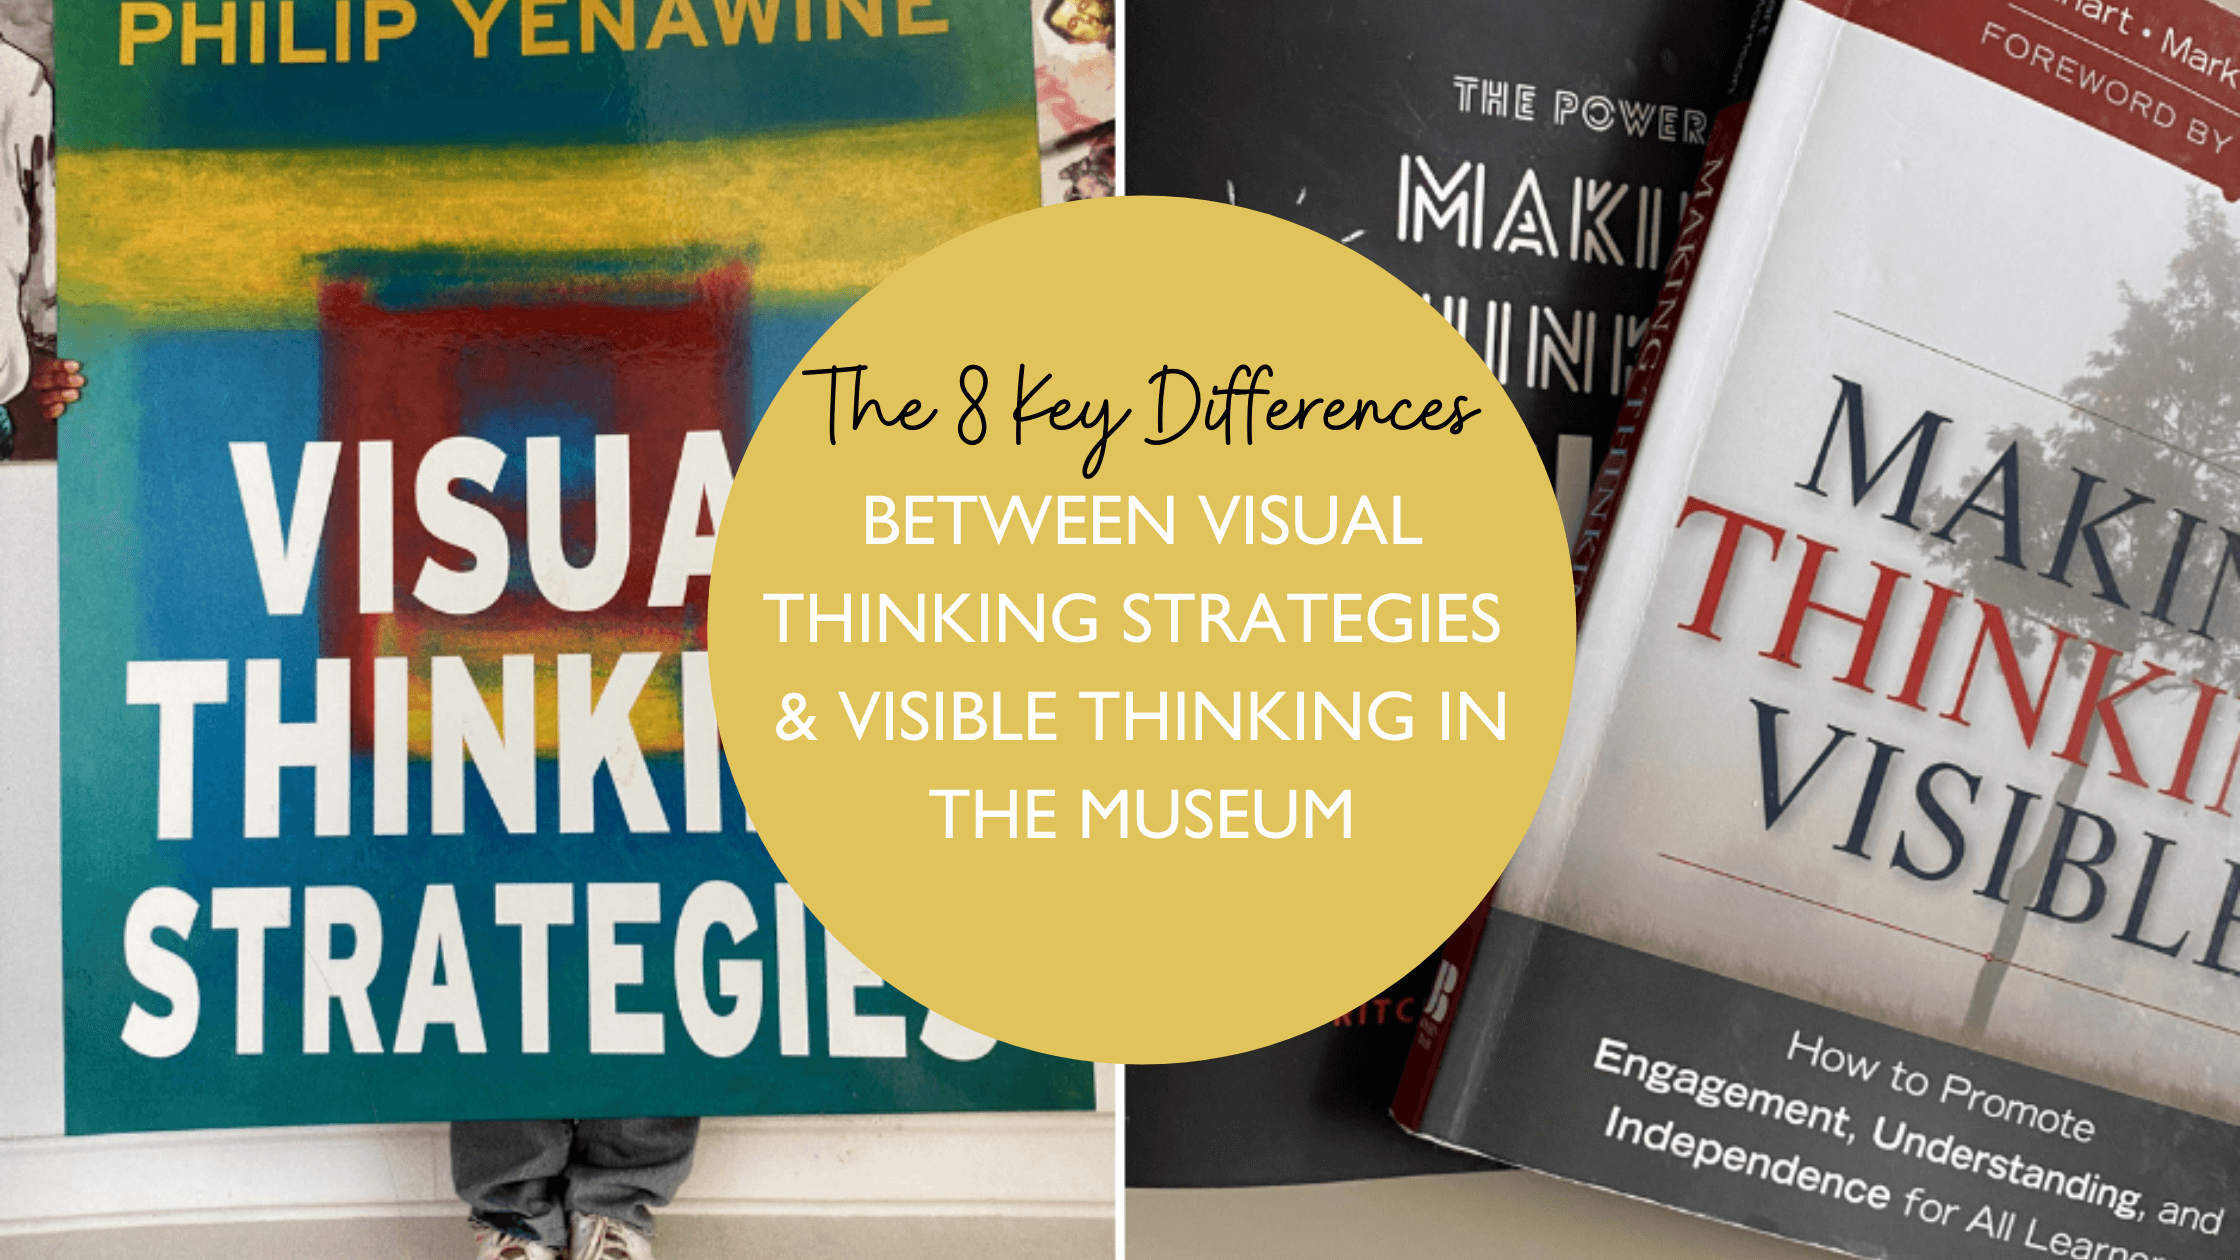 What are the 8 Key Differences between Visual Thinking Strategies and Visible Thinking in the Museum?